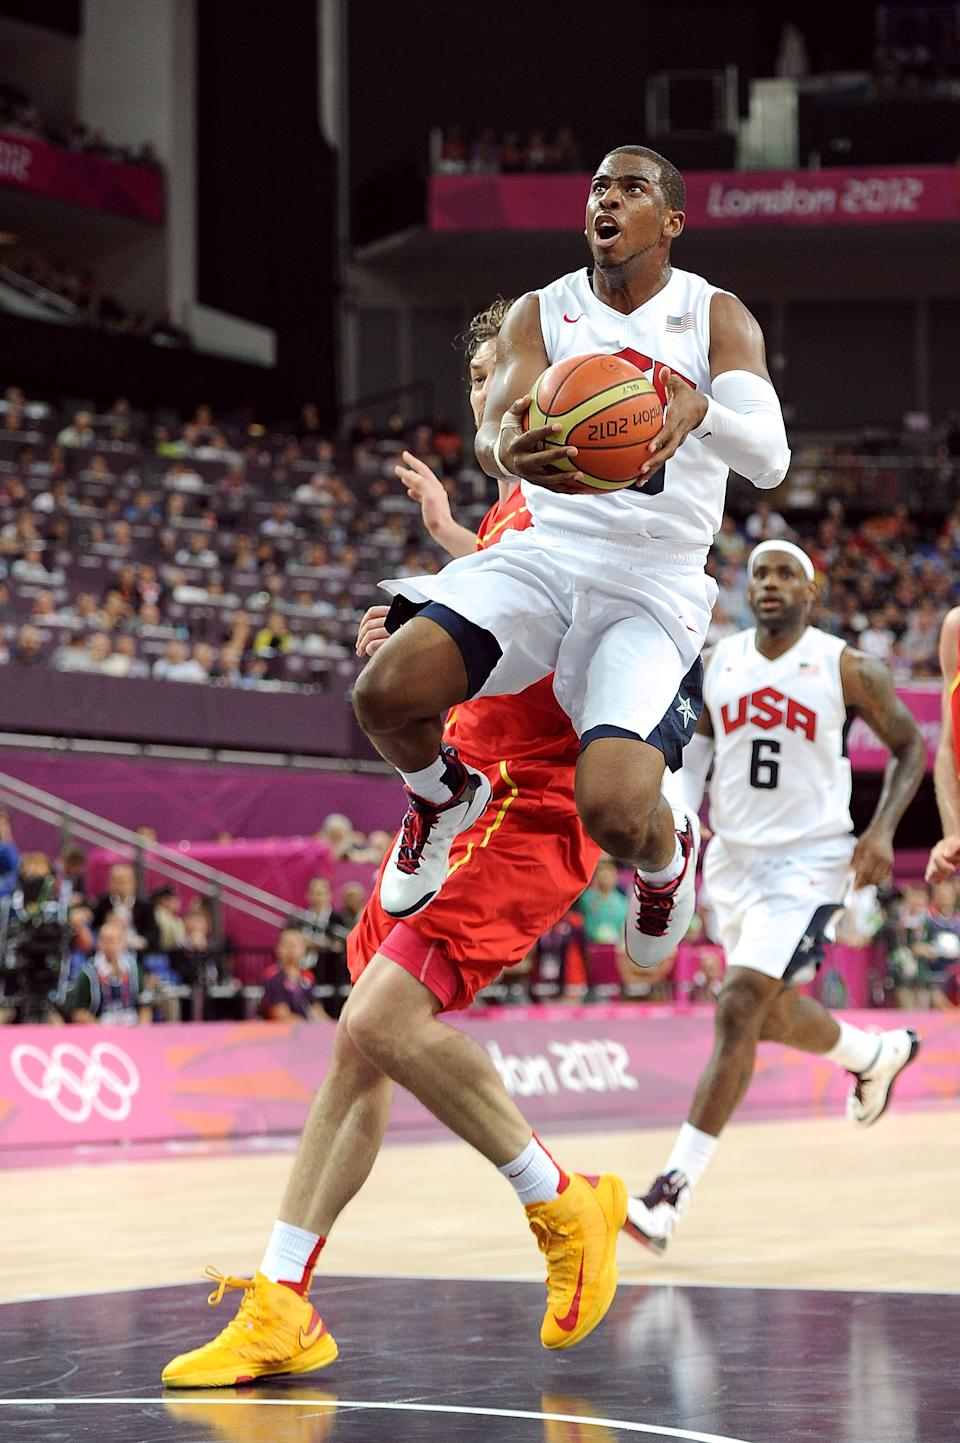 LONDON, ENGLAND - AUGUST 12: Chris Paul #13 of the United States takes the ball to the basket during the Men's Basketball gold medal game between the United States and Spain on Day 16 of the London 2012 Olympics Games at North Greenwich Arena on August 12, 2012 in London, England. (Photo by Harry How/Getty Images)